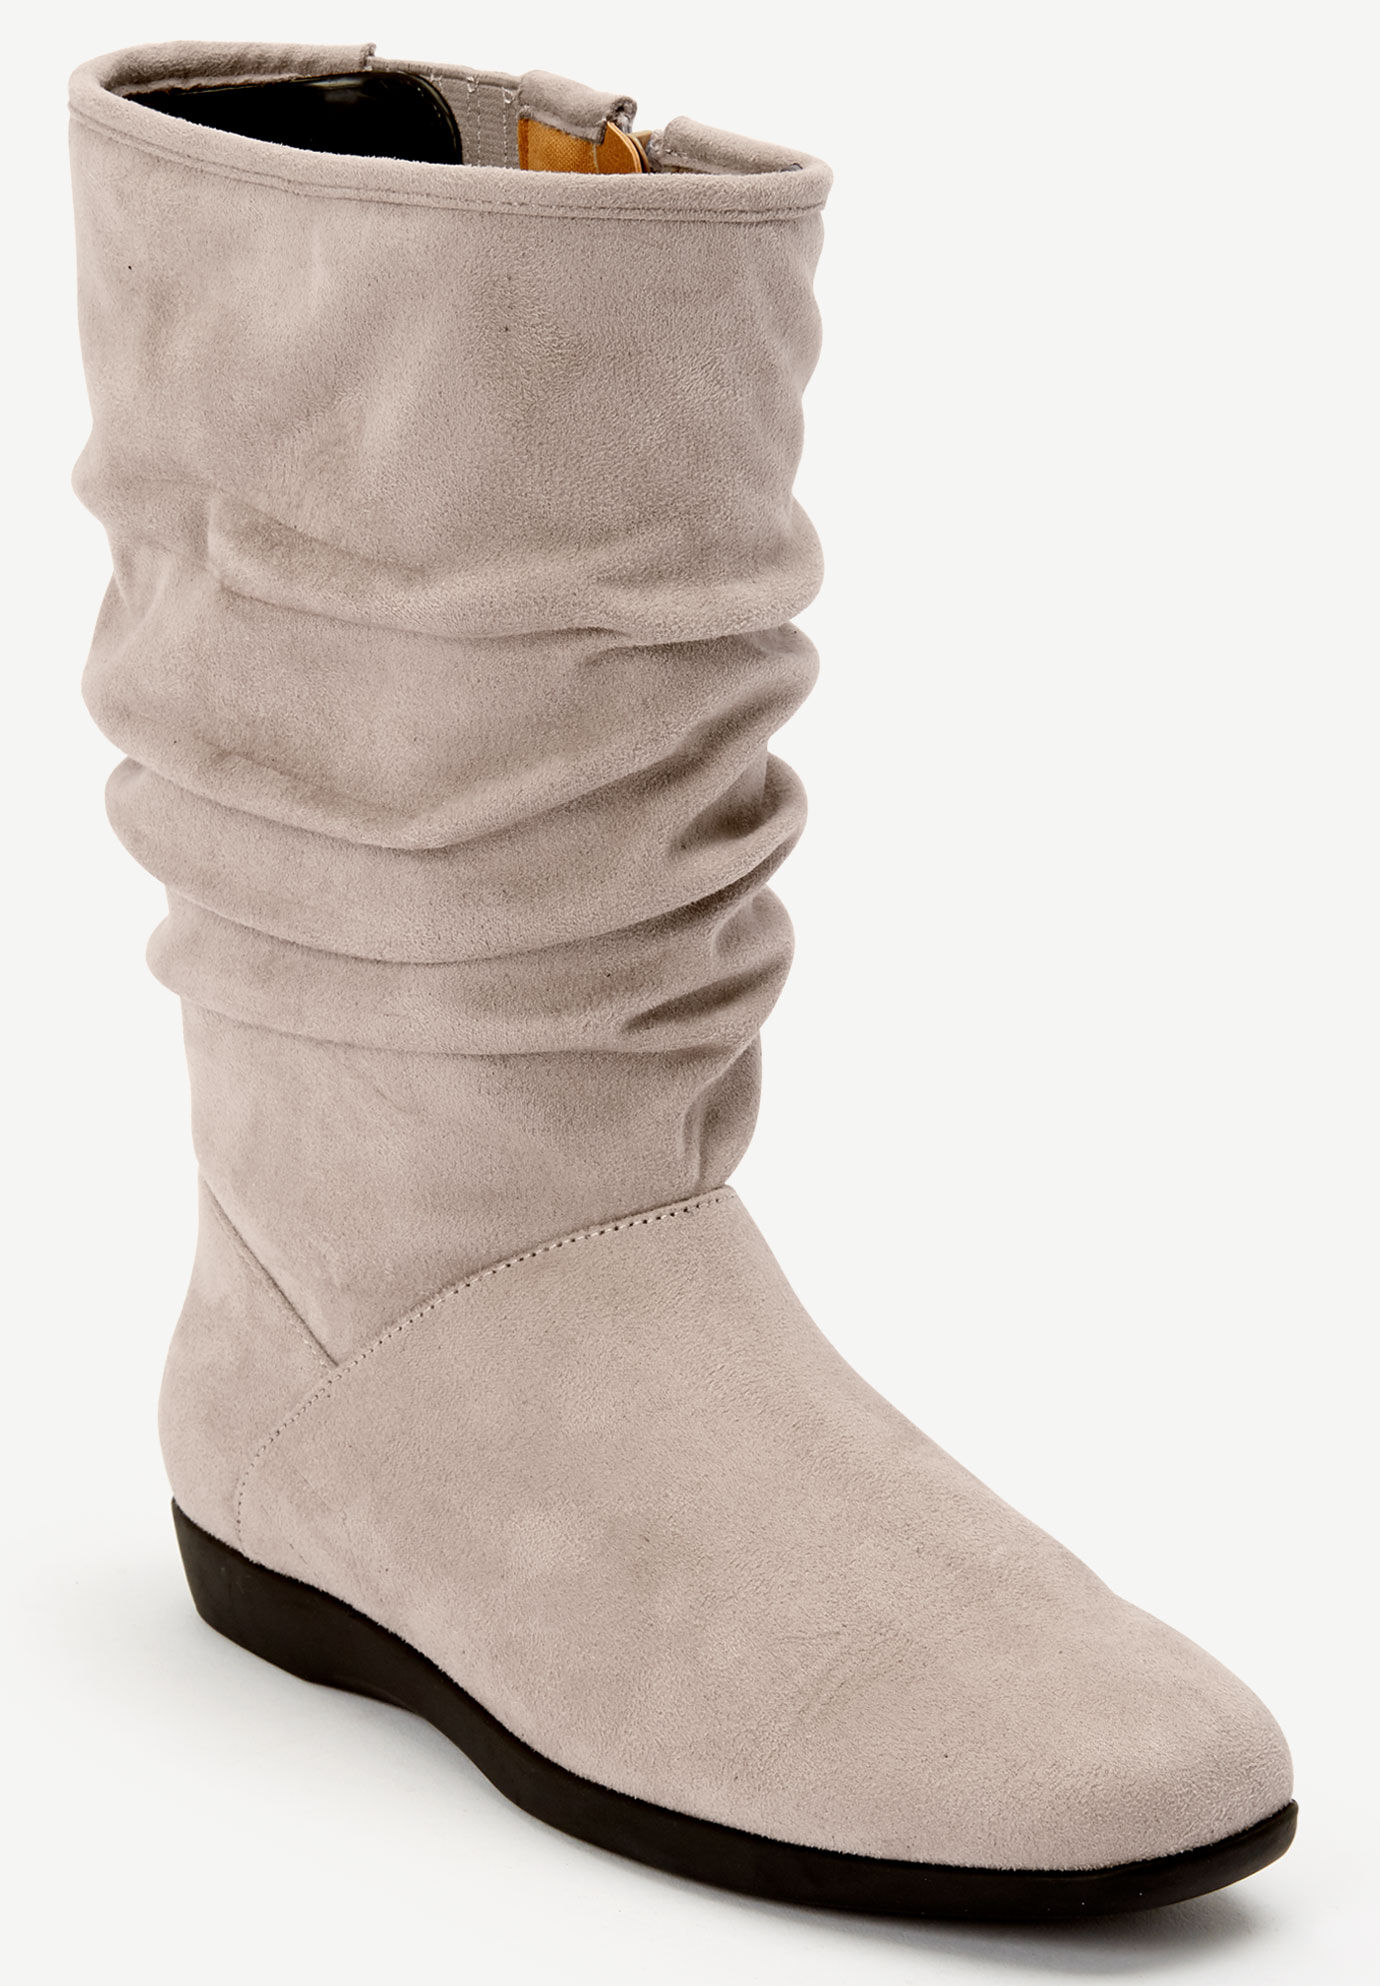 Wide Width Boots for Women   One Stop Plus